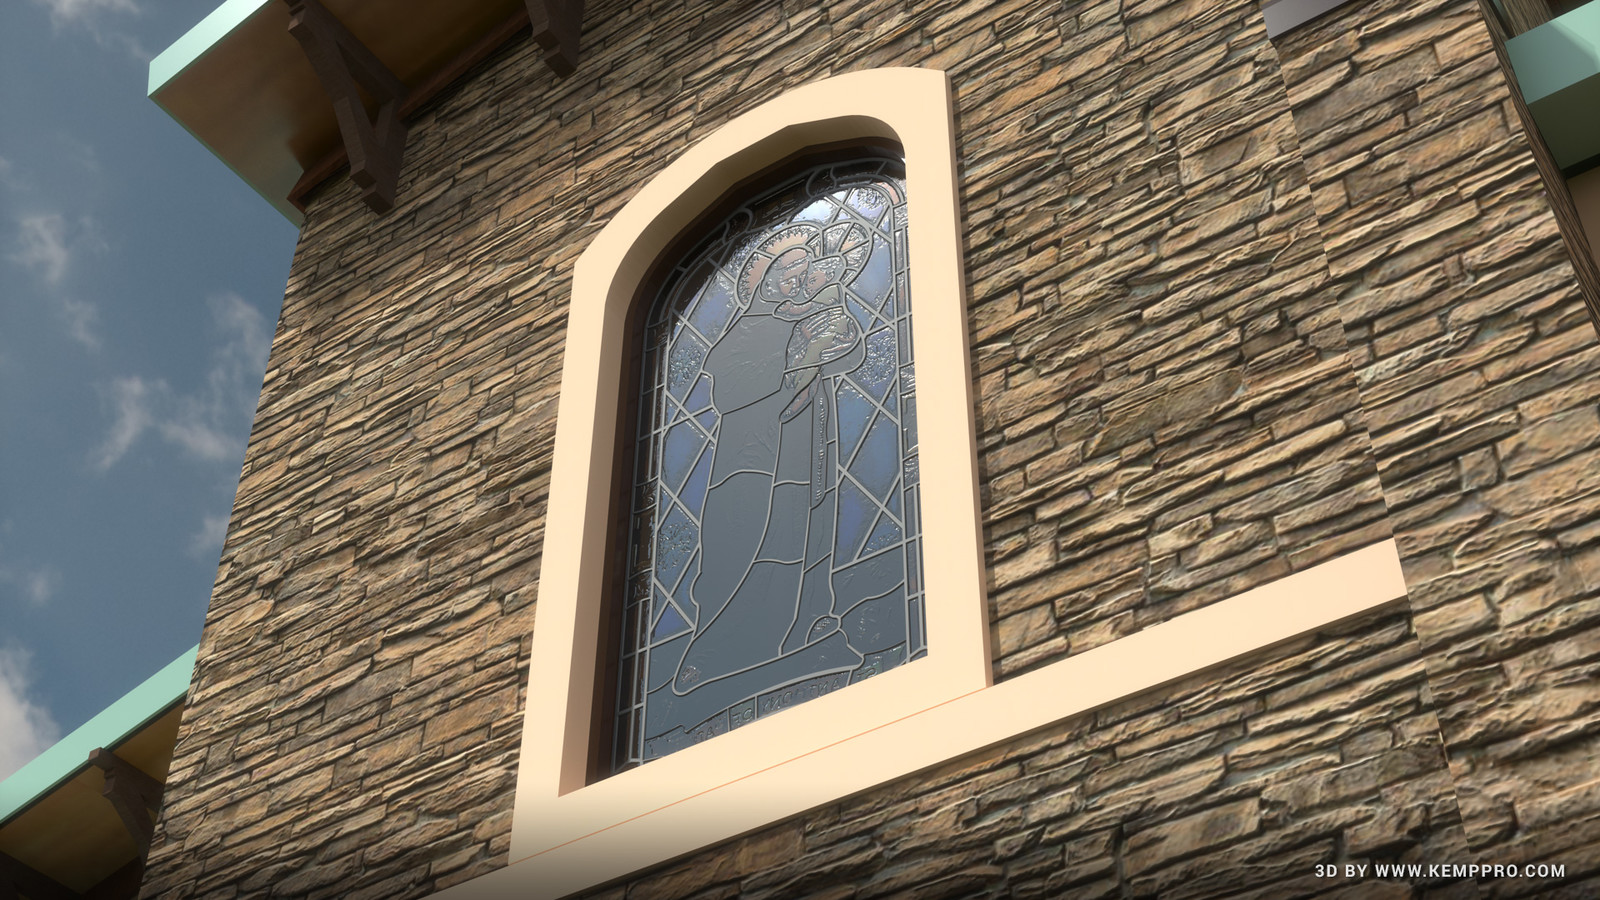 #SketchUp 2017 + #TheaRender    Stained-Glass-window-Scene-4_CK Window design and real-world construction by Judson Studios, Pasadena CA  HDR by HDRI-SKIES found here: http://hdri-skies.com/shop/hdri-sky-309/